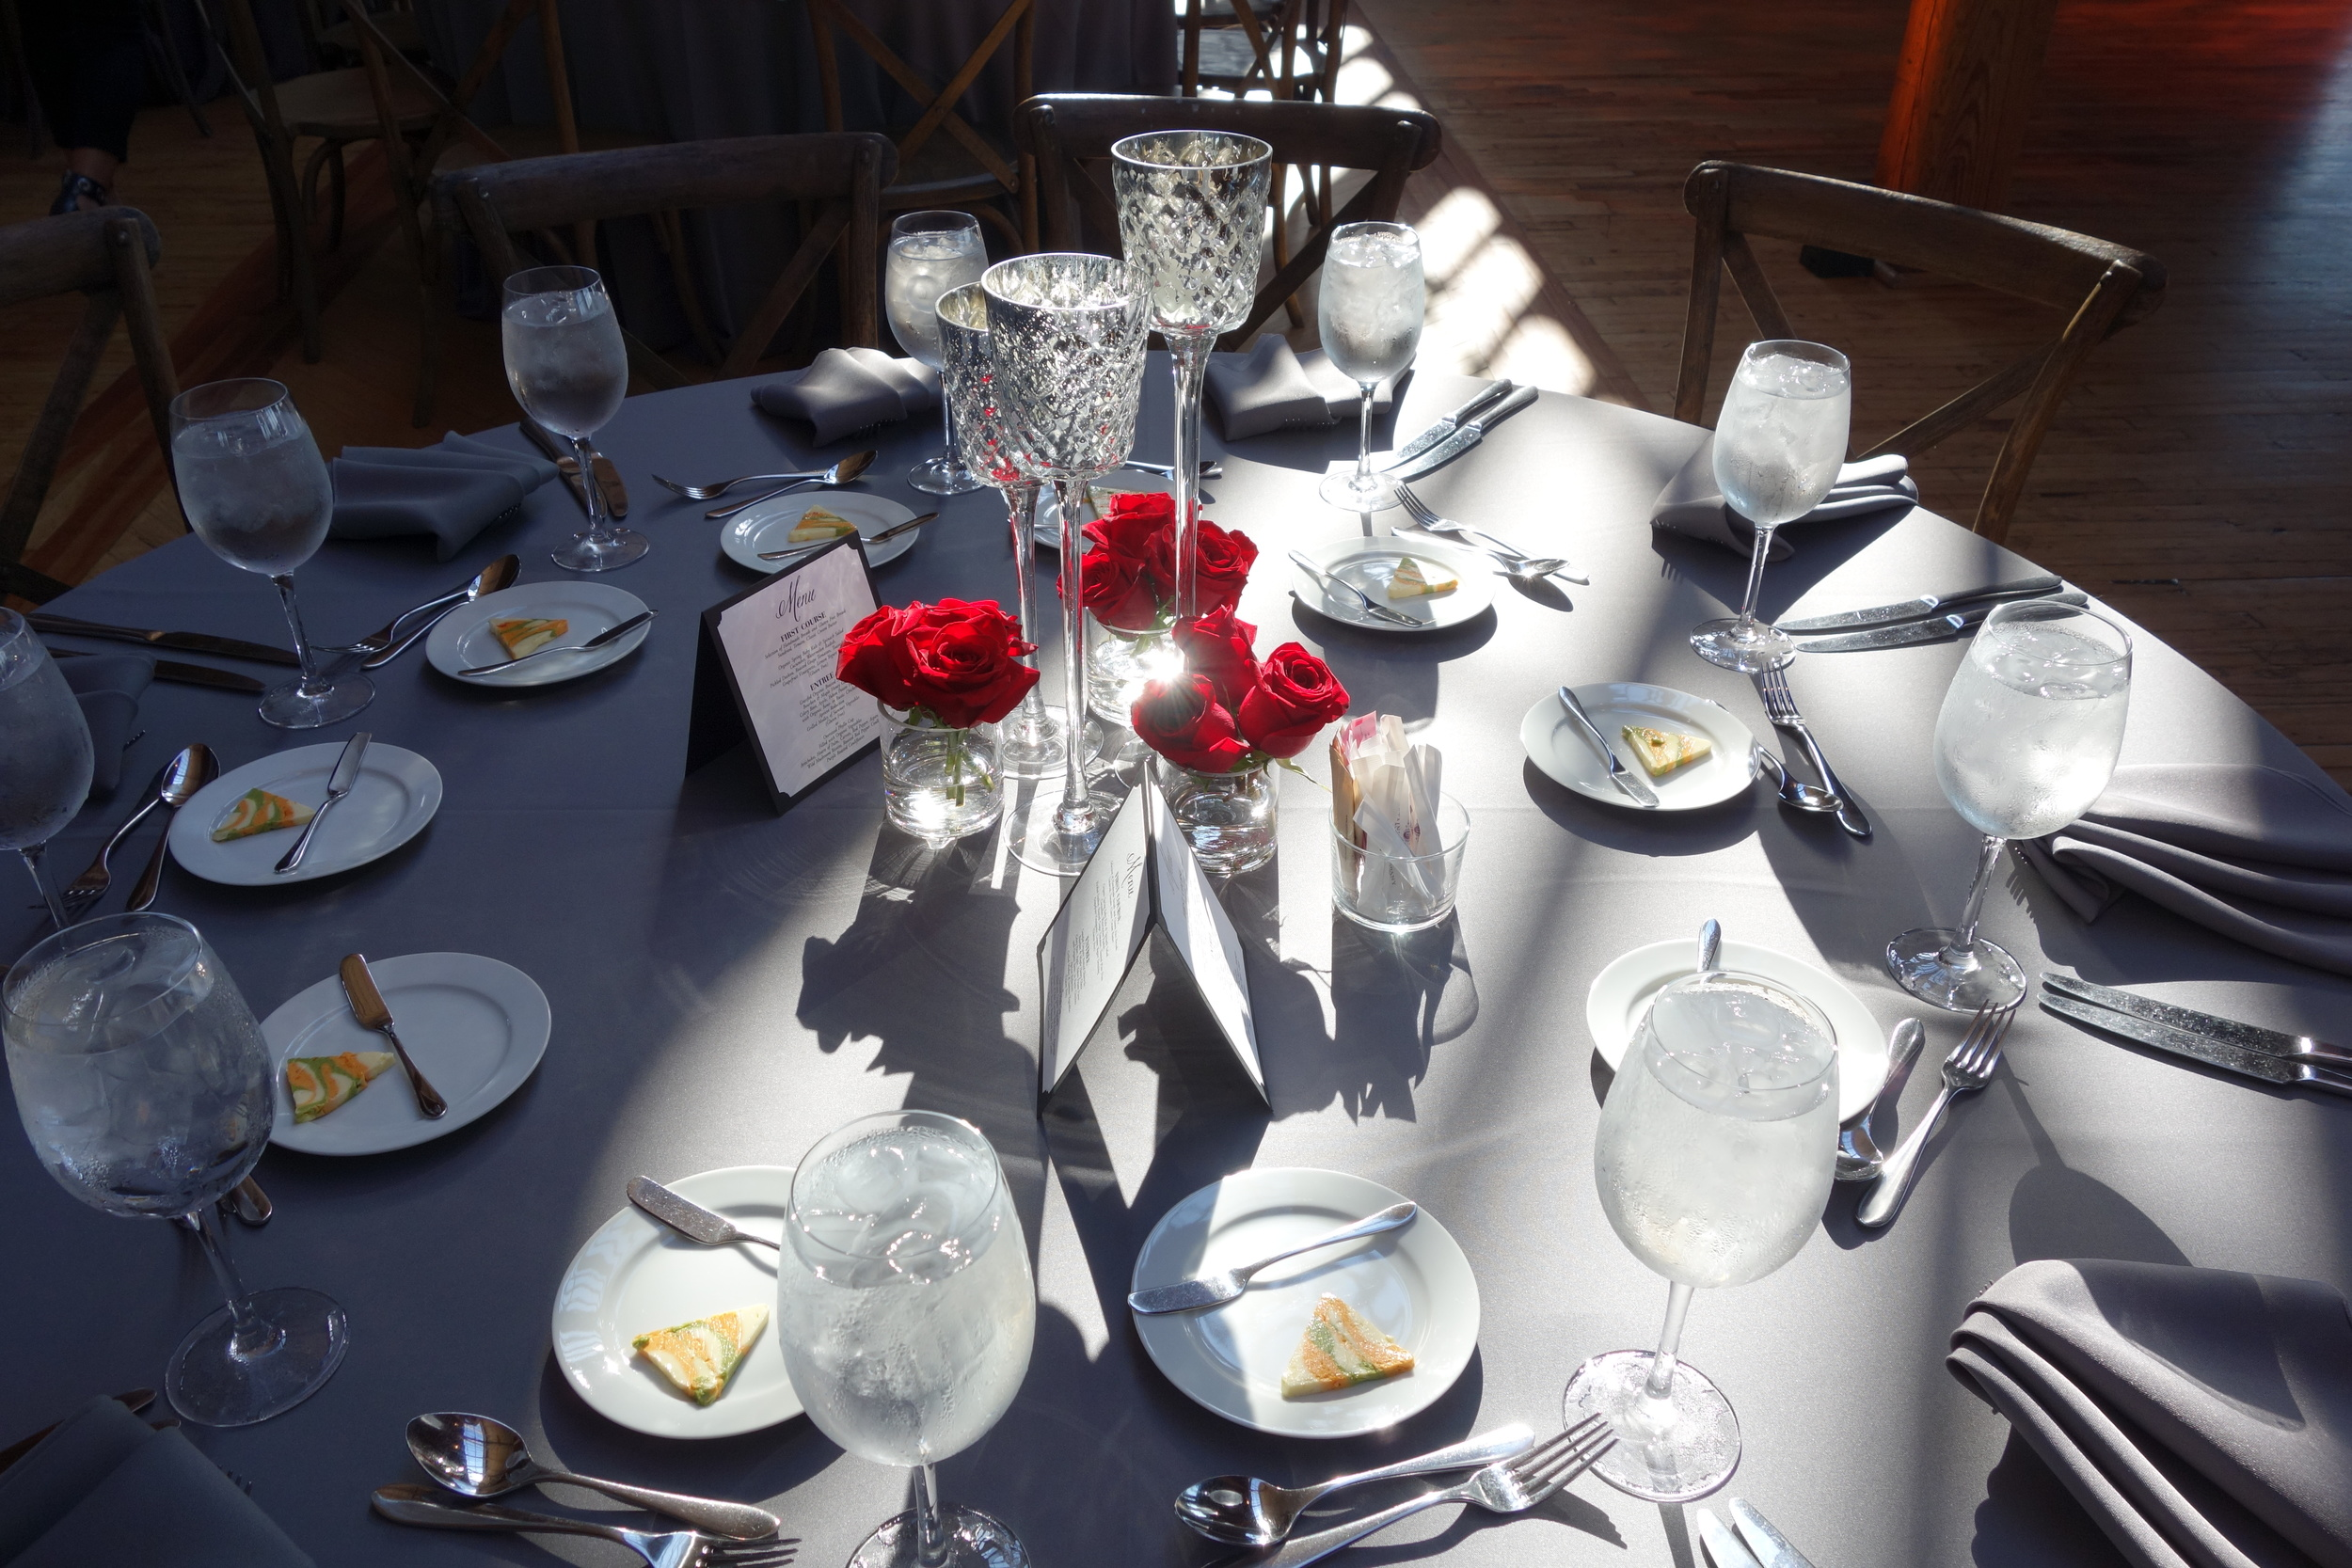 The skylight shining through on the gorgeous table setting!